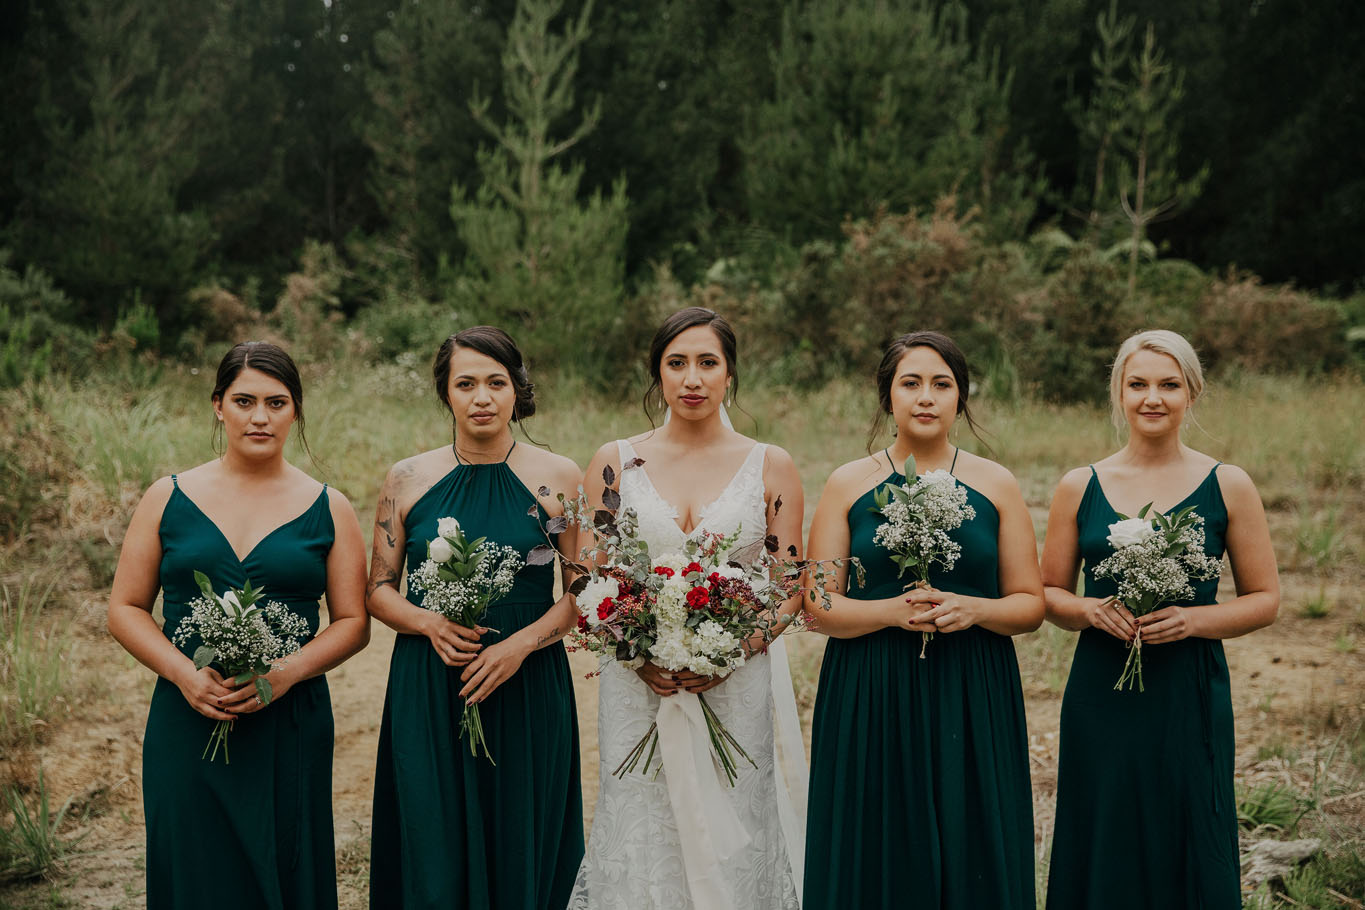 Elyssa Taulapiu Hera Bosset Gown Green And White Outdoors Bridesmaids Lineup